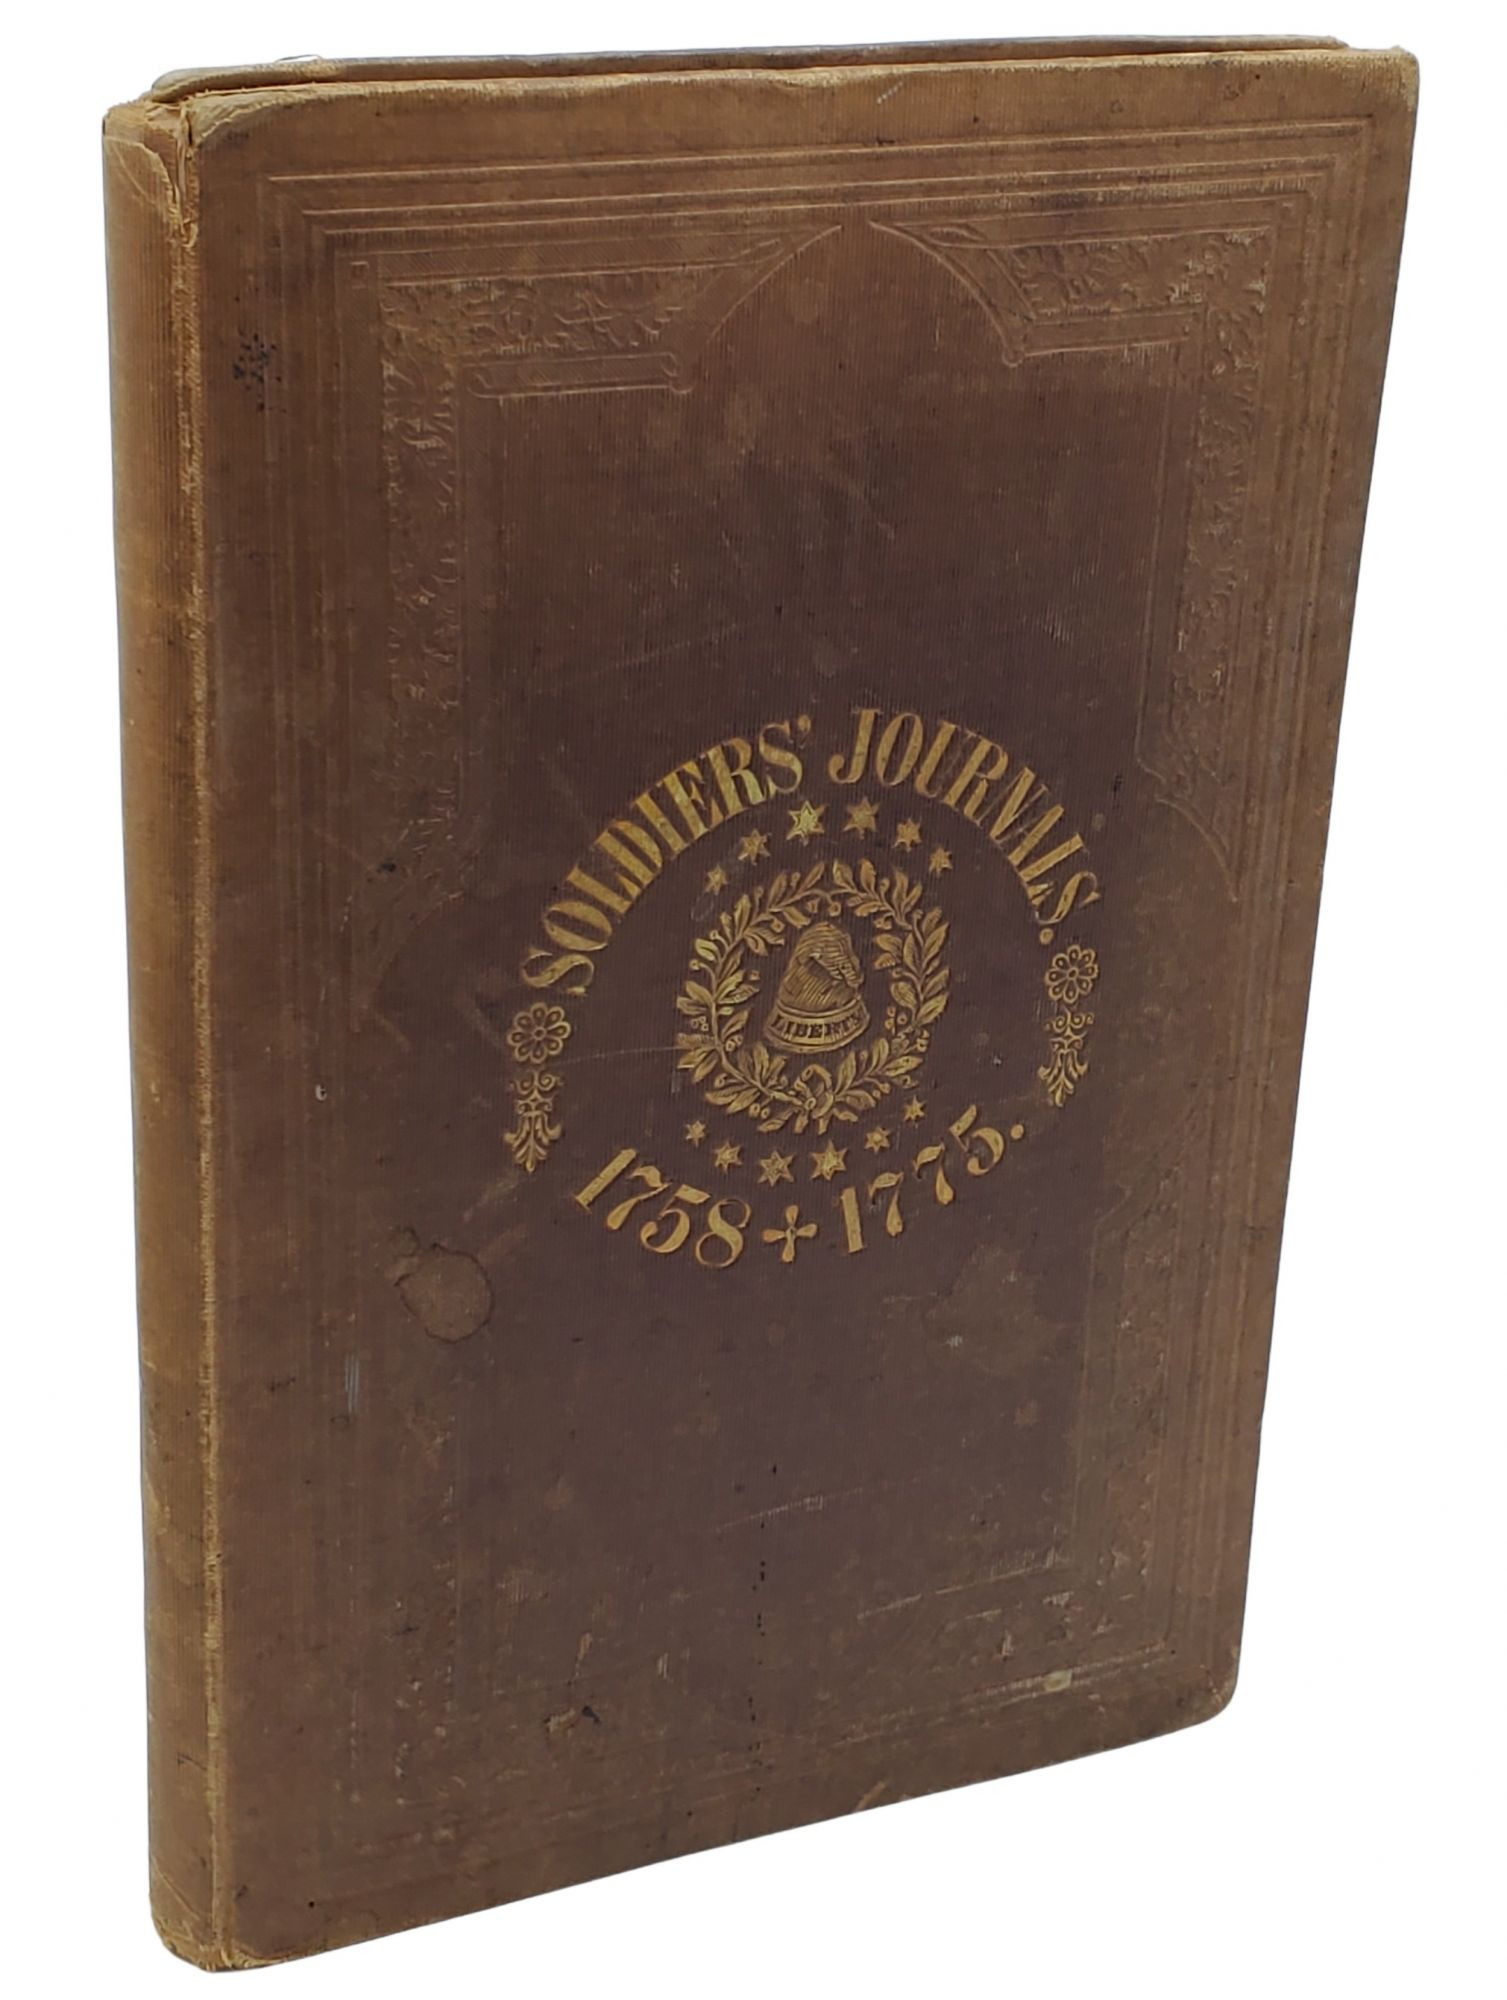 THE MILITARY JOURNALS OF TWO PRIVATE SOLDIERS 1758-1775. Lemuel Lyon, Samuel Haws, Tomlinson, Abraham.